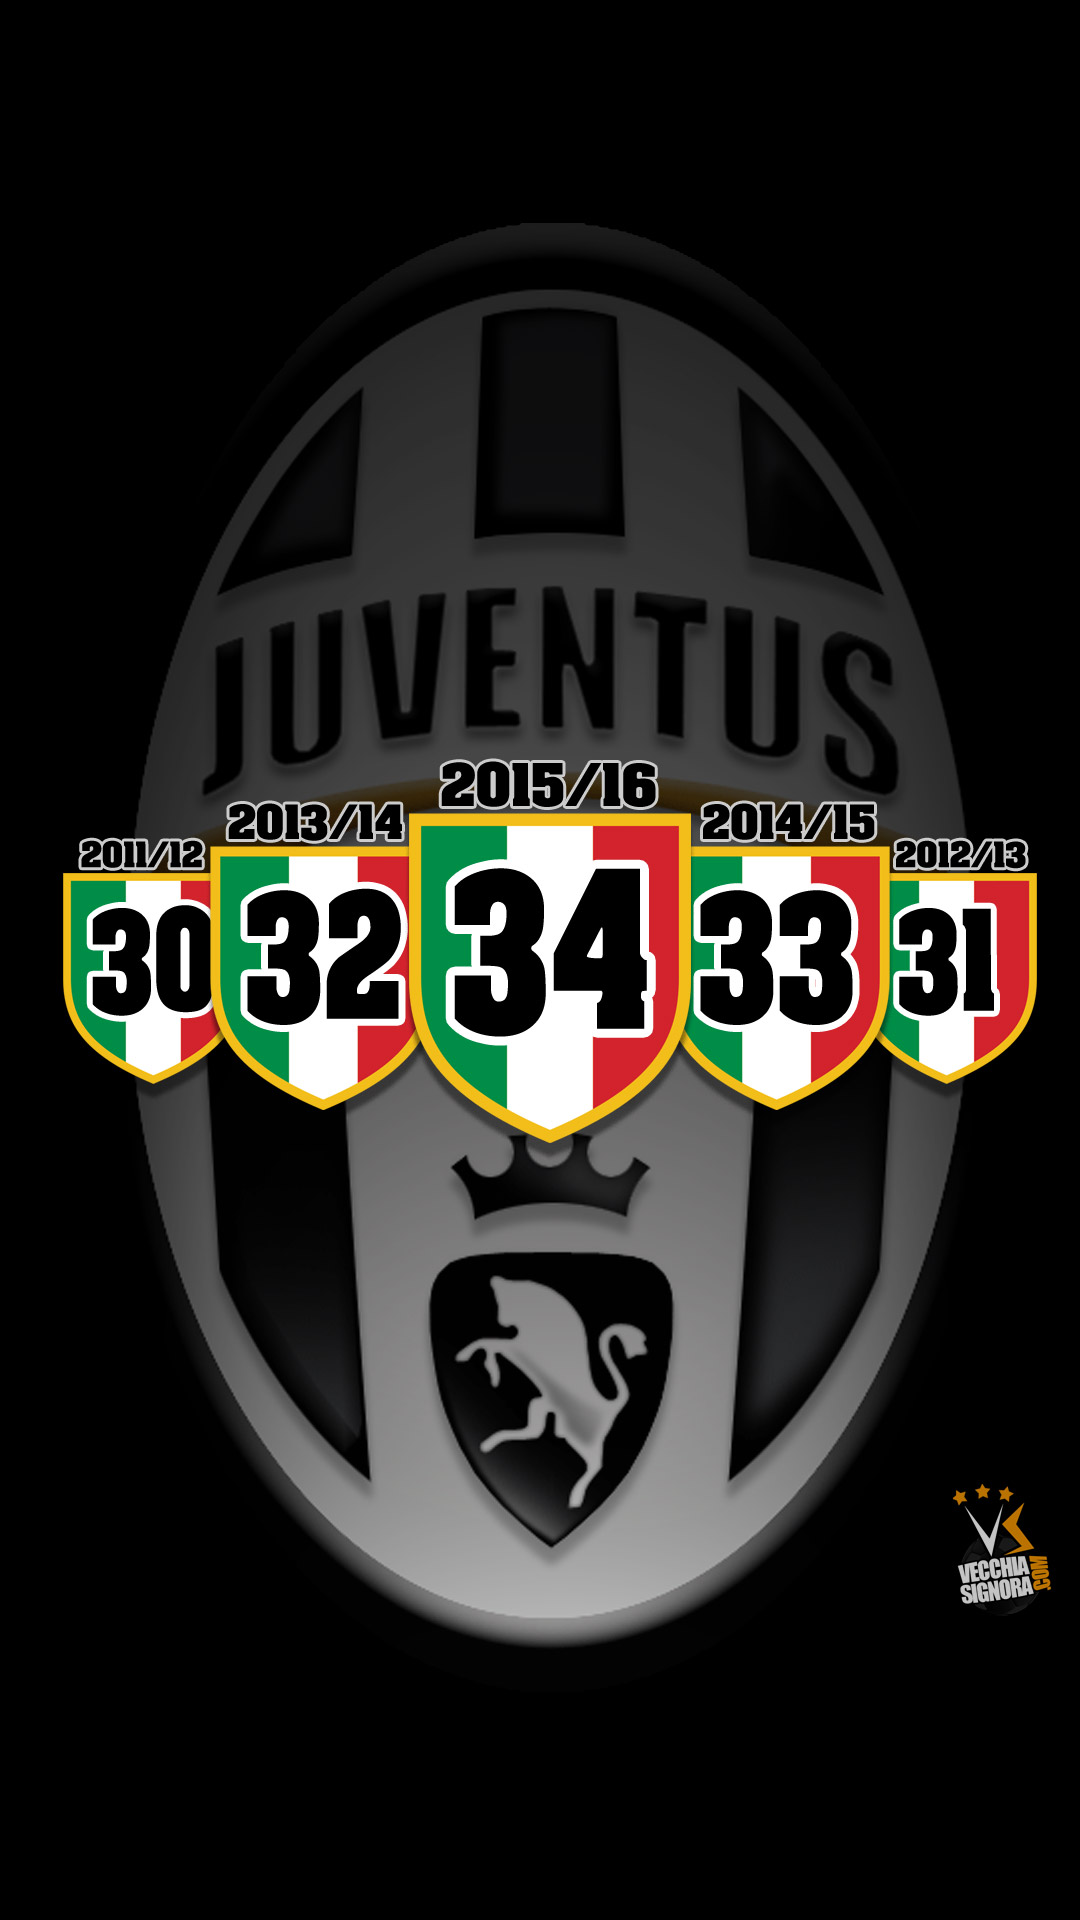 Sfondi per smartphone vsart wallpaper signatures for Sfondo juventus hd